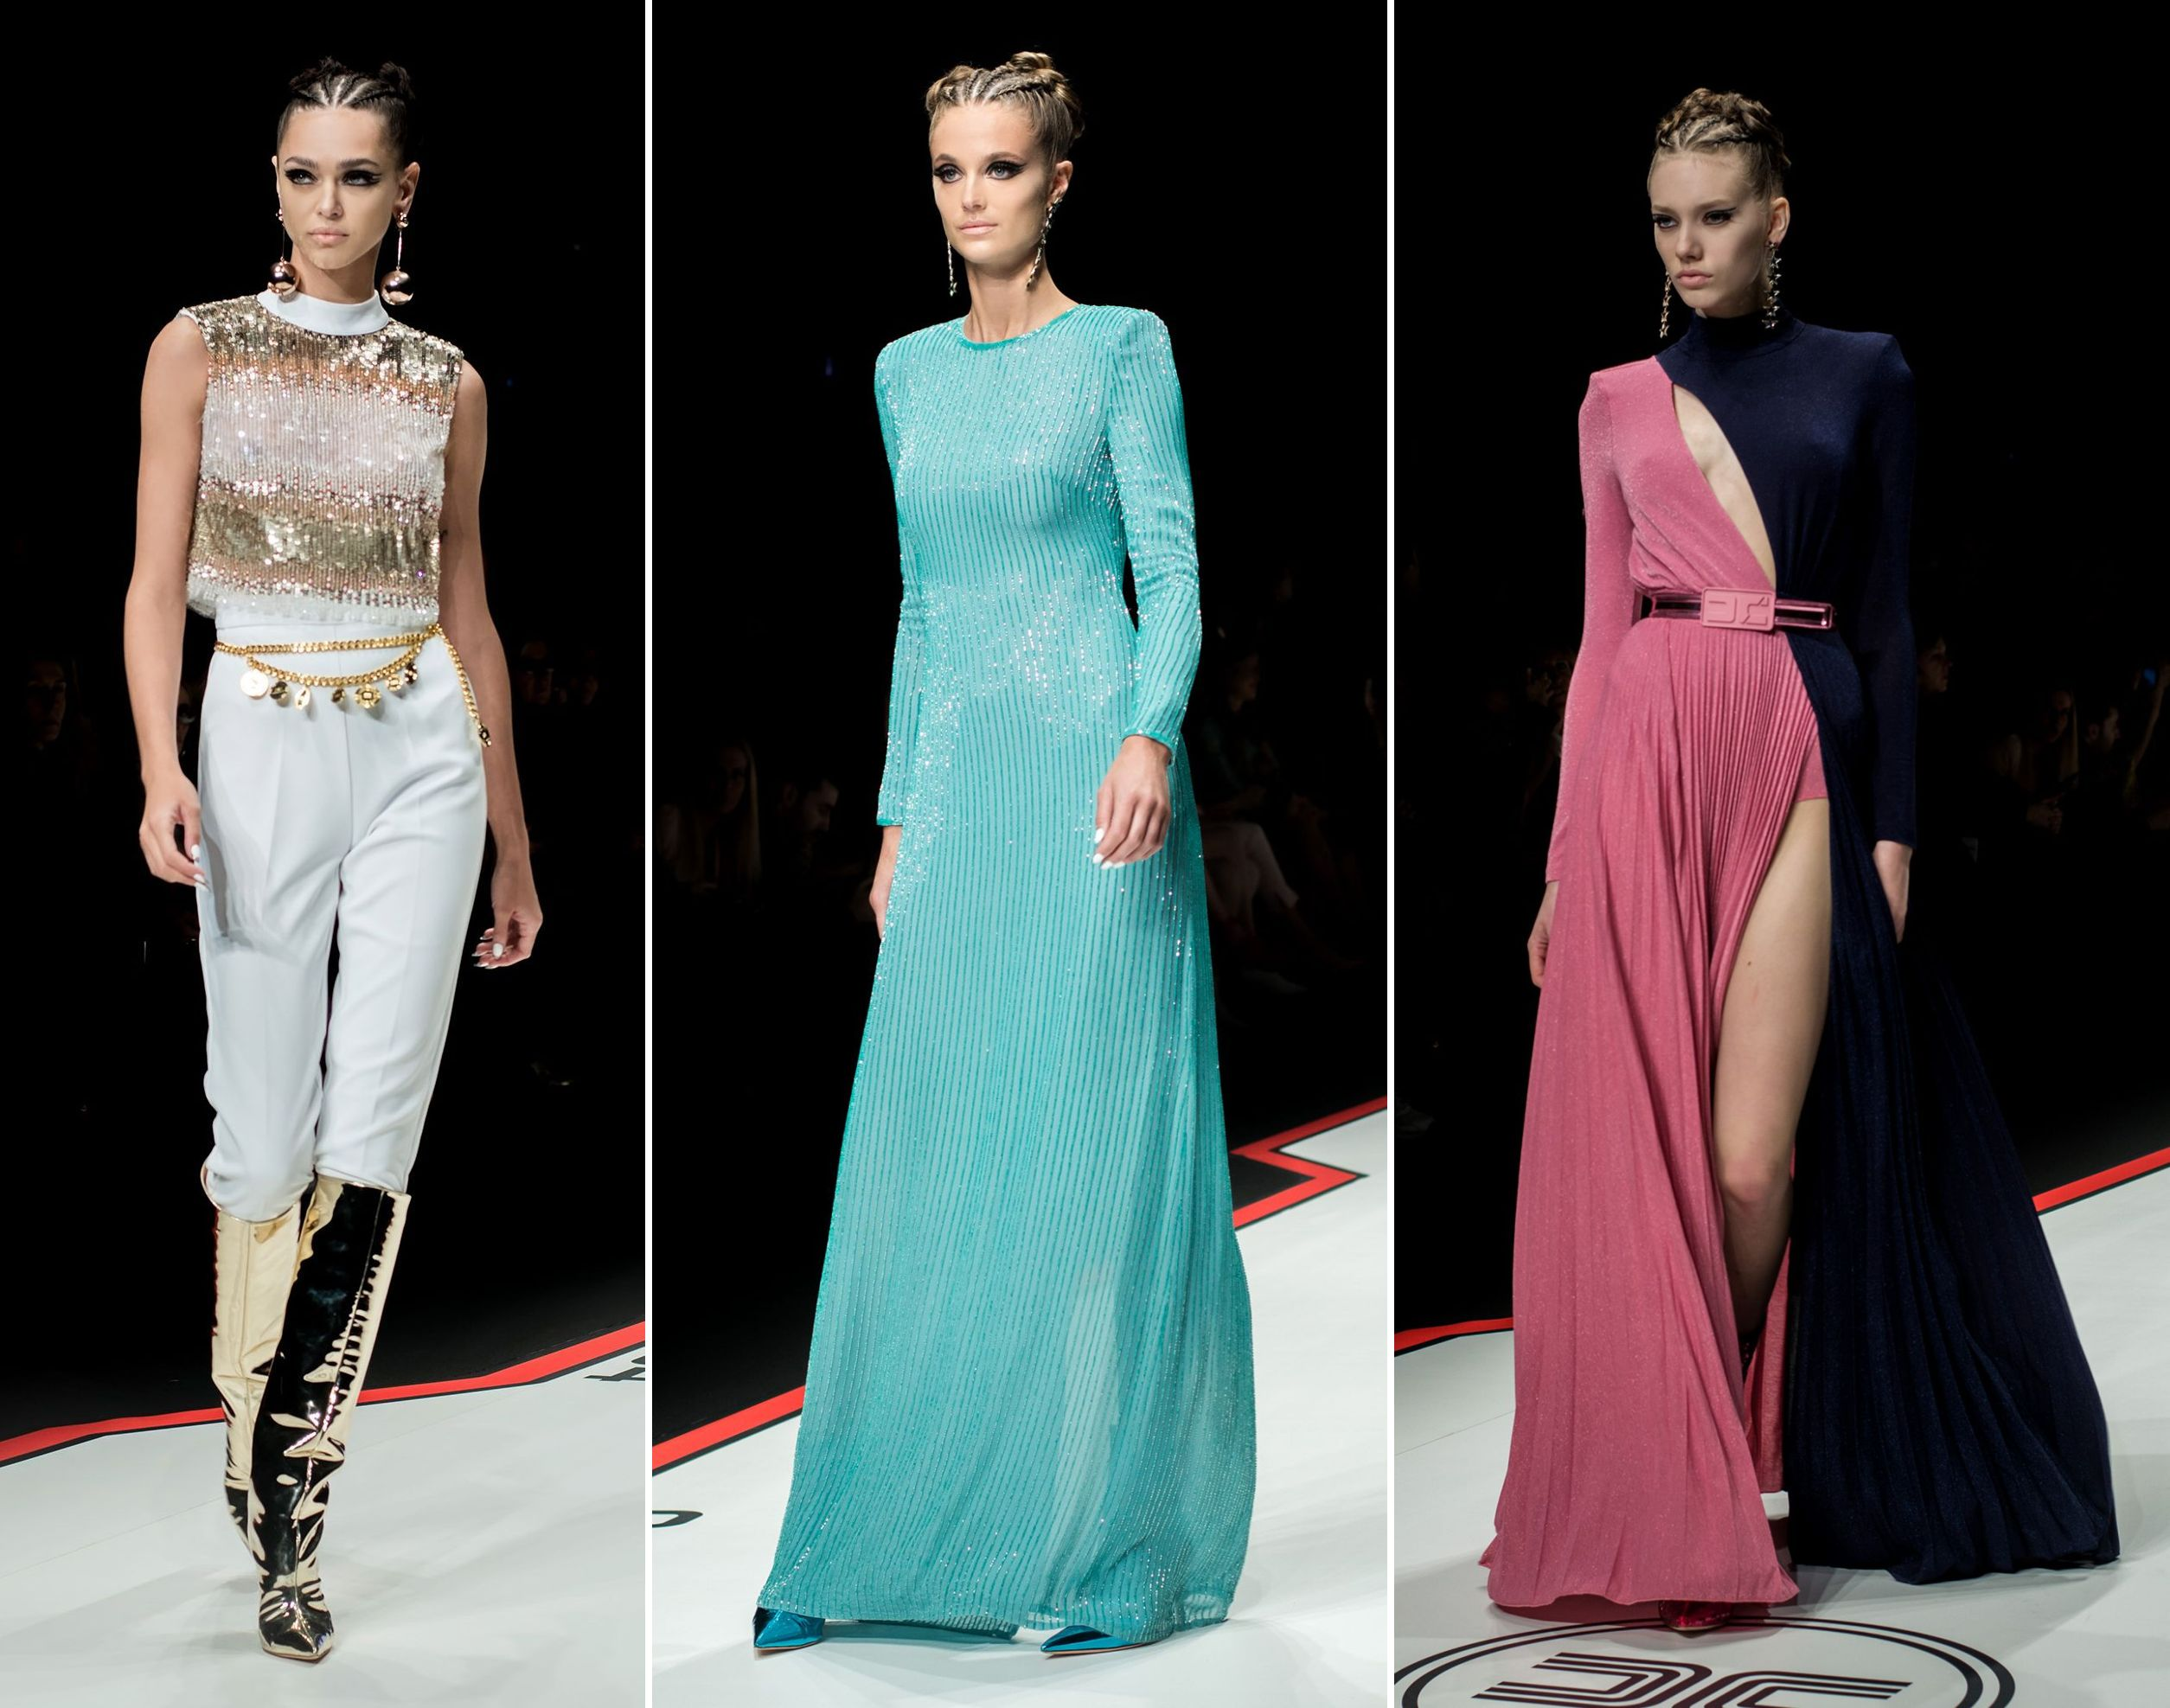 THE BEAUTIFUL UNIVERSE OF ELISABETTA FRANCHI